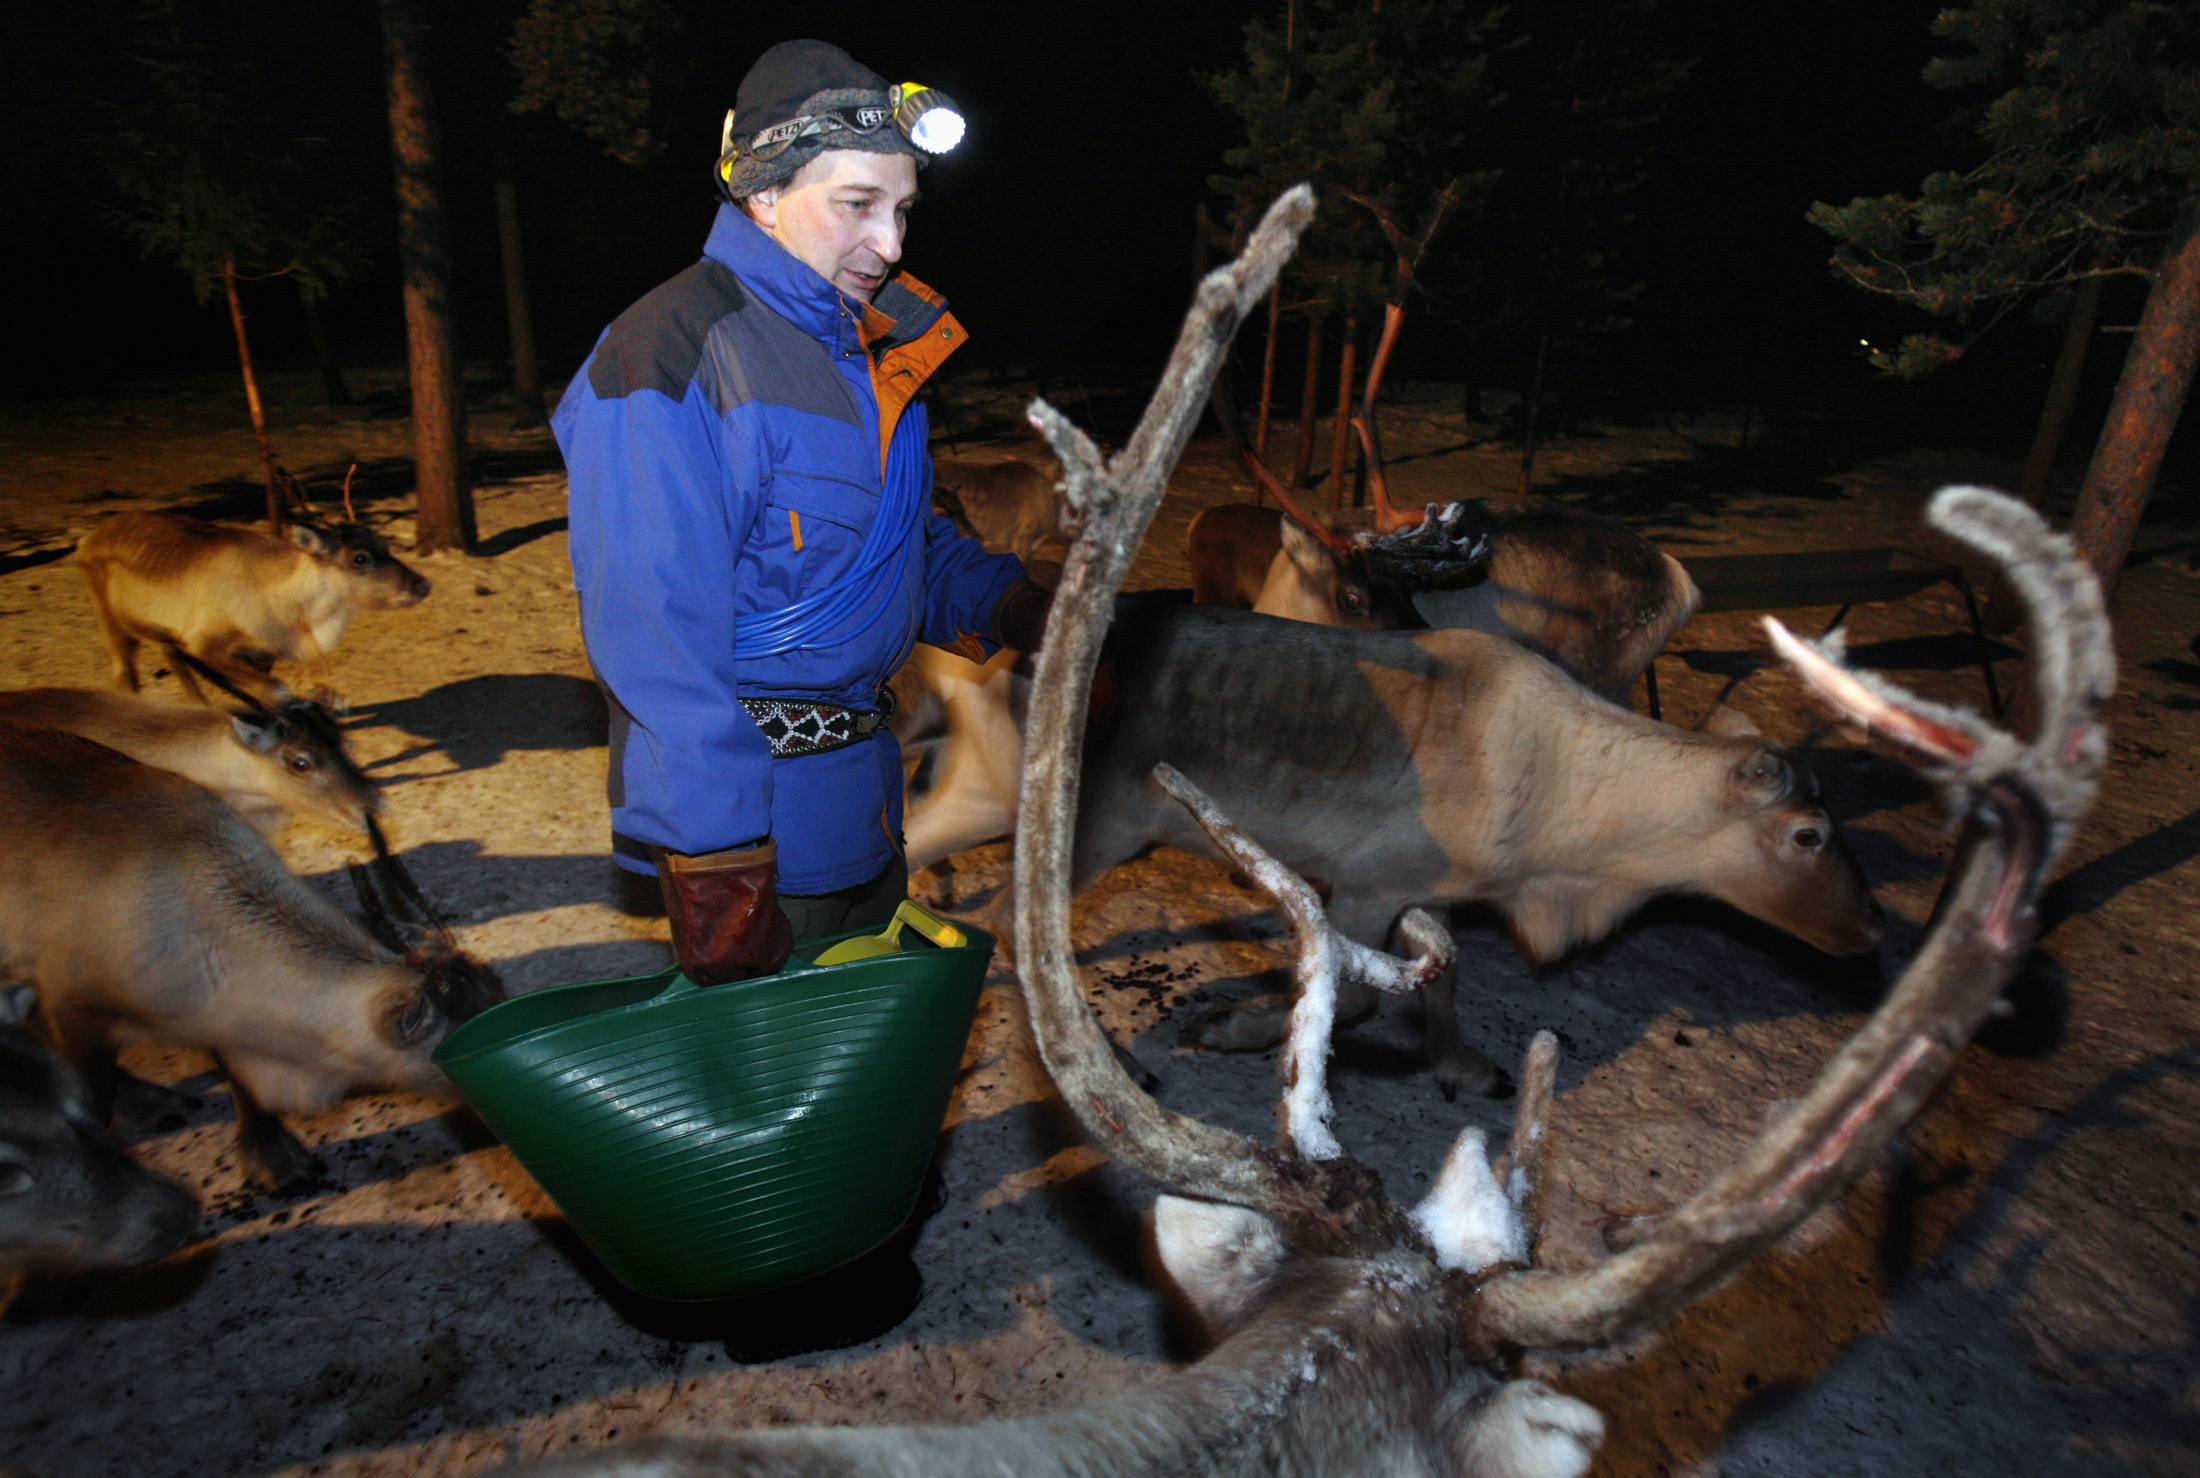 Nils Torbjorn Nutti, a Sami reindeer herder, feeds his herd in Jukkasjarvi, Sweden December 24, 2006. (Bob Strong / REUTERS)